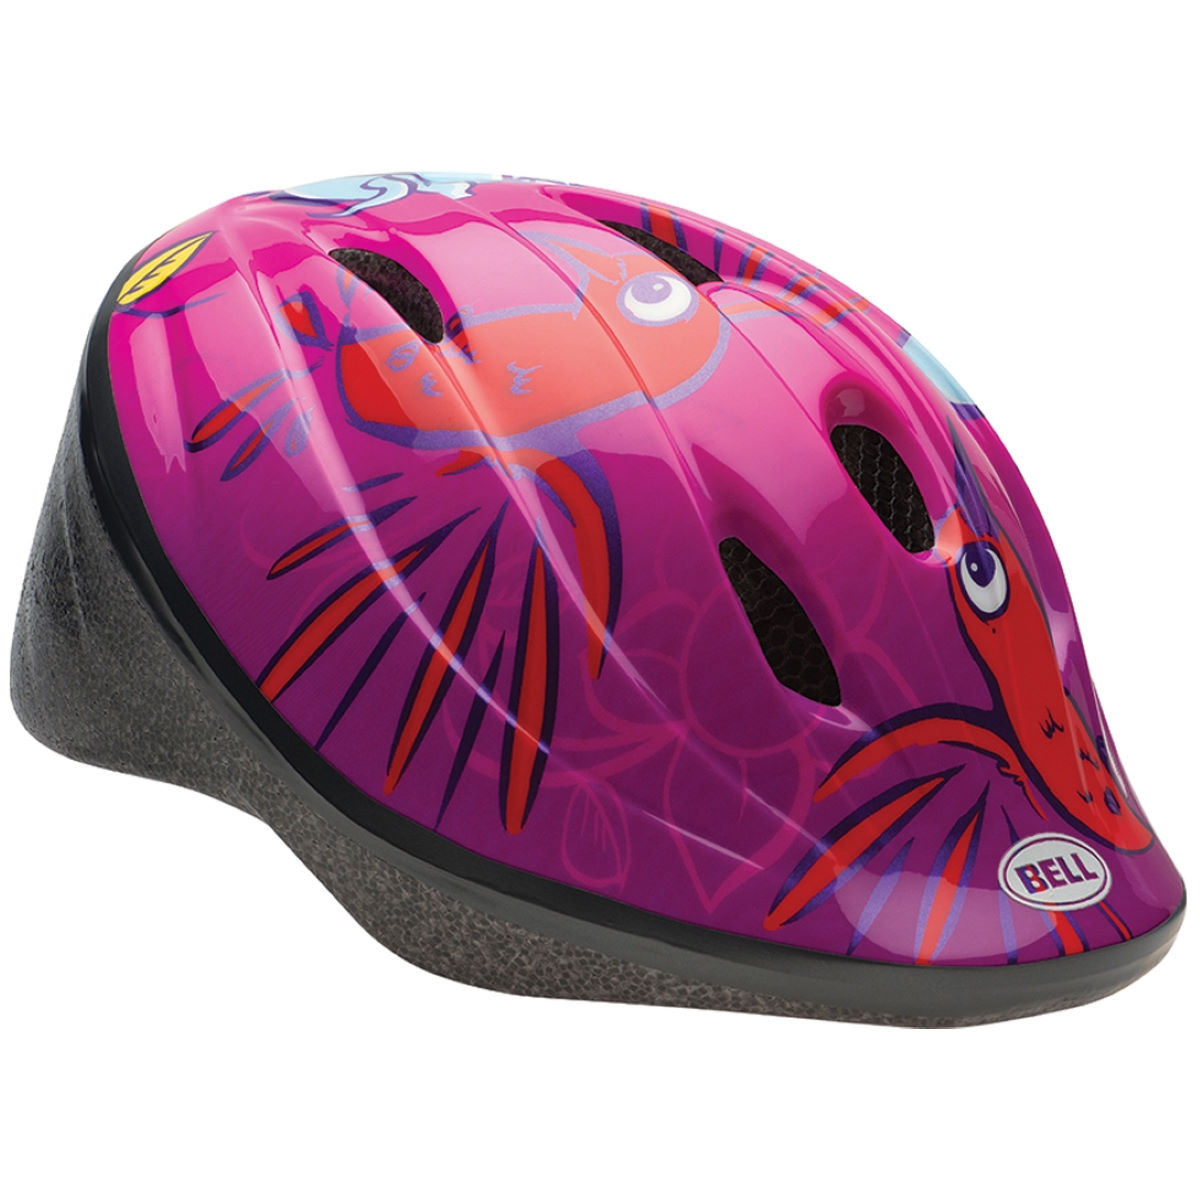 Casque Enfant Bell Bellino - XS Pink Humming Birds